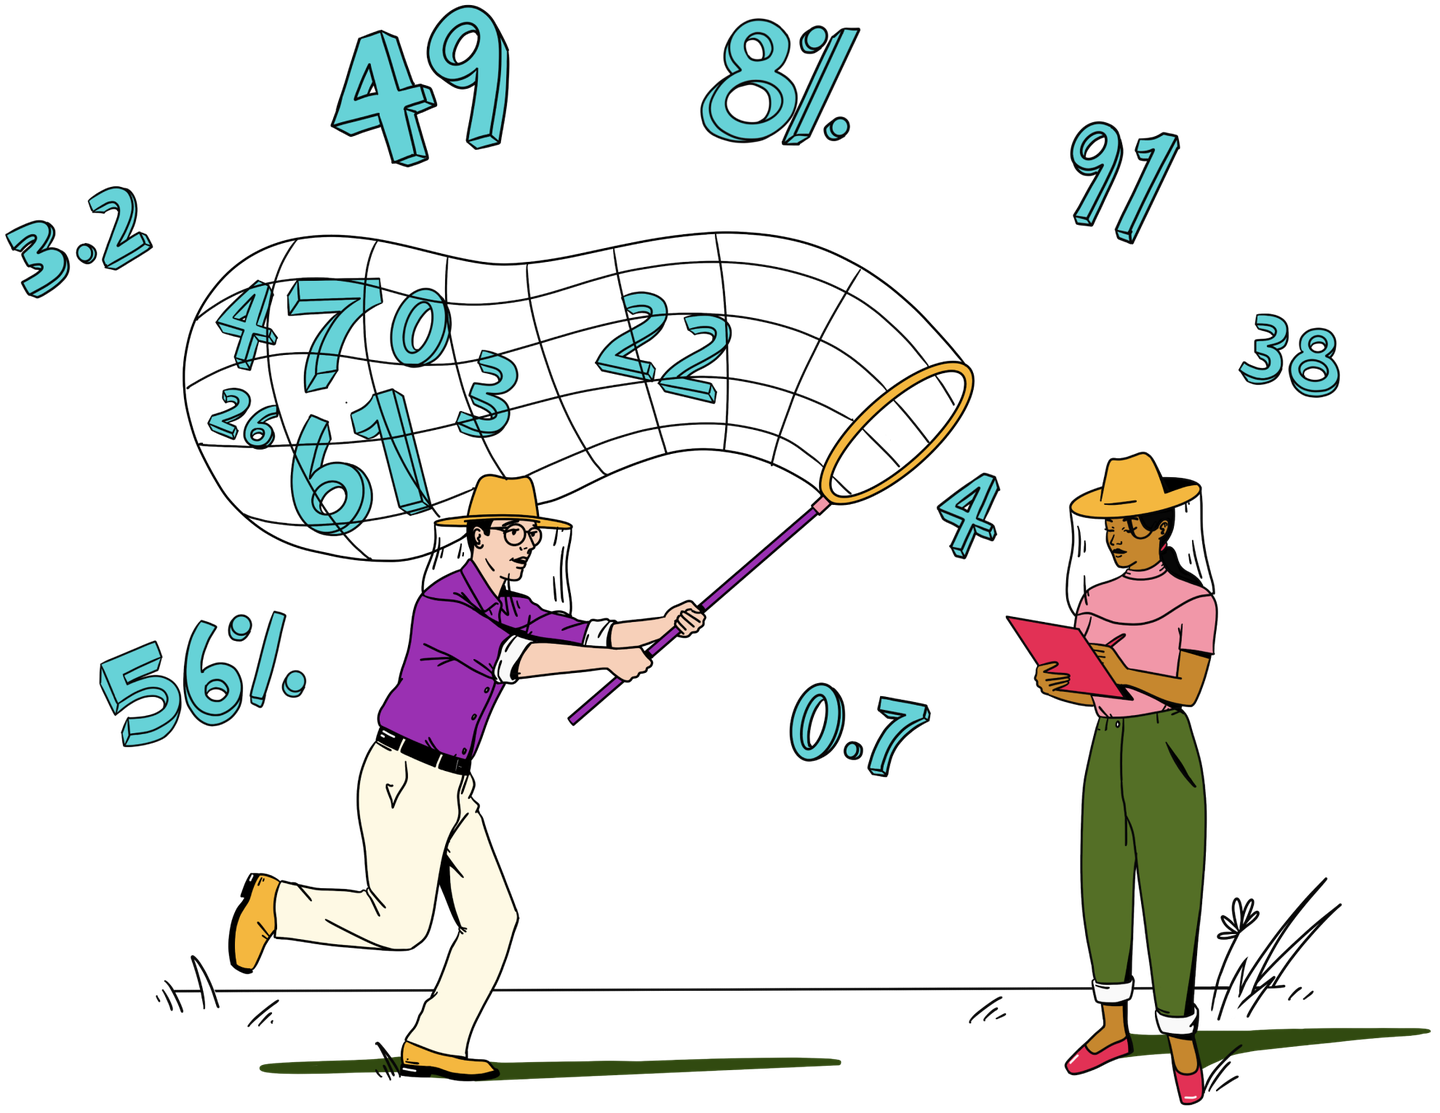 Illustration of two people, one catching floating data with a net, the other making notes on a clipboard